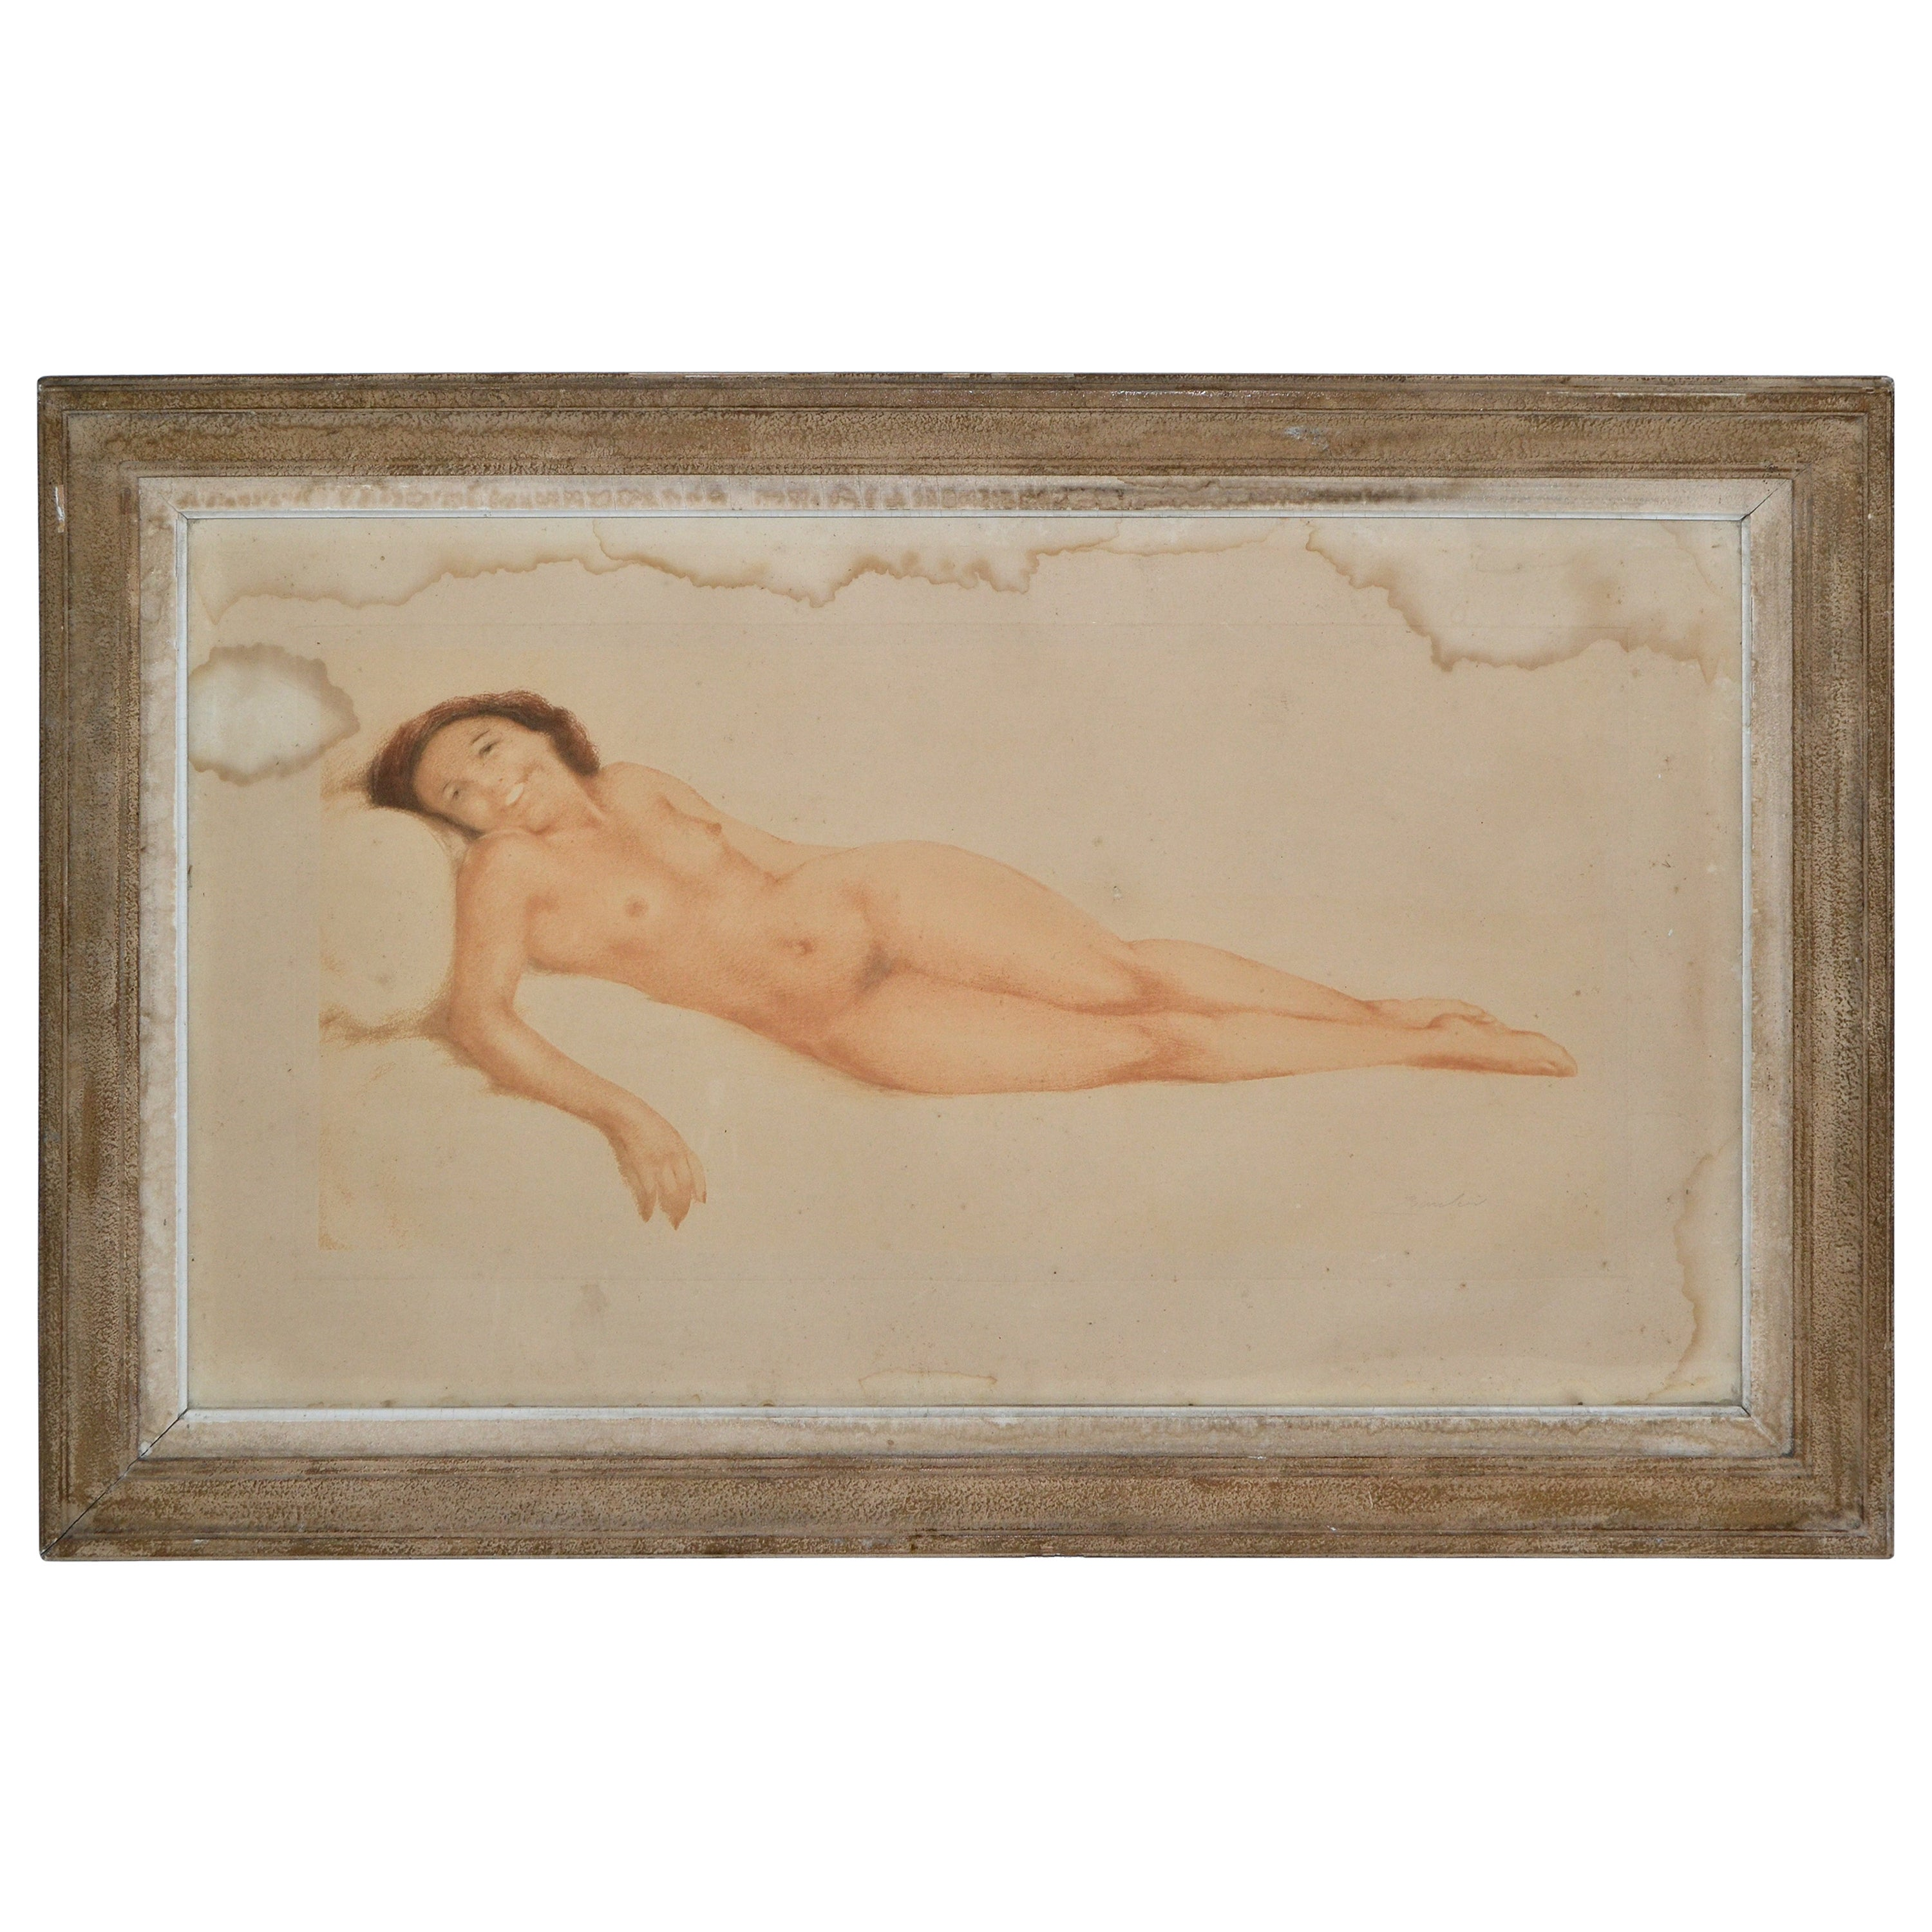 Signed by Artist French Midcentury Framed Glass Oil Painting Resting Nude Woman